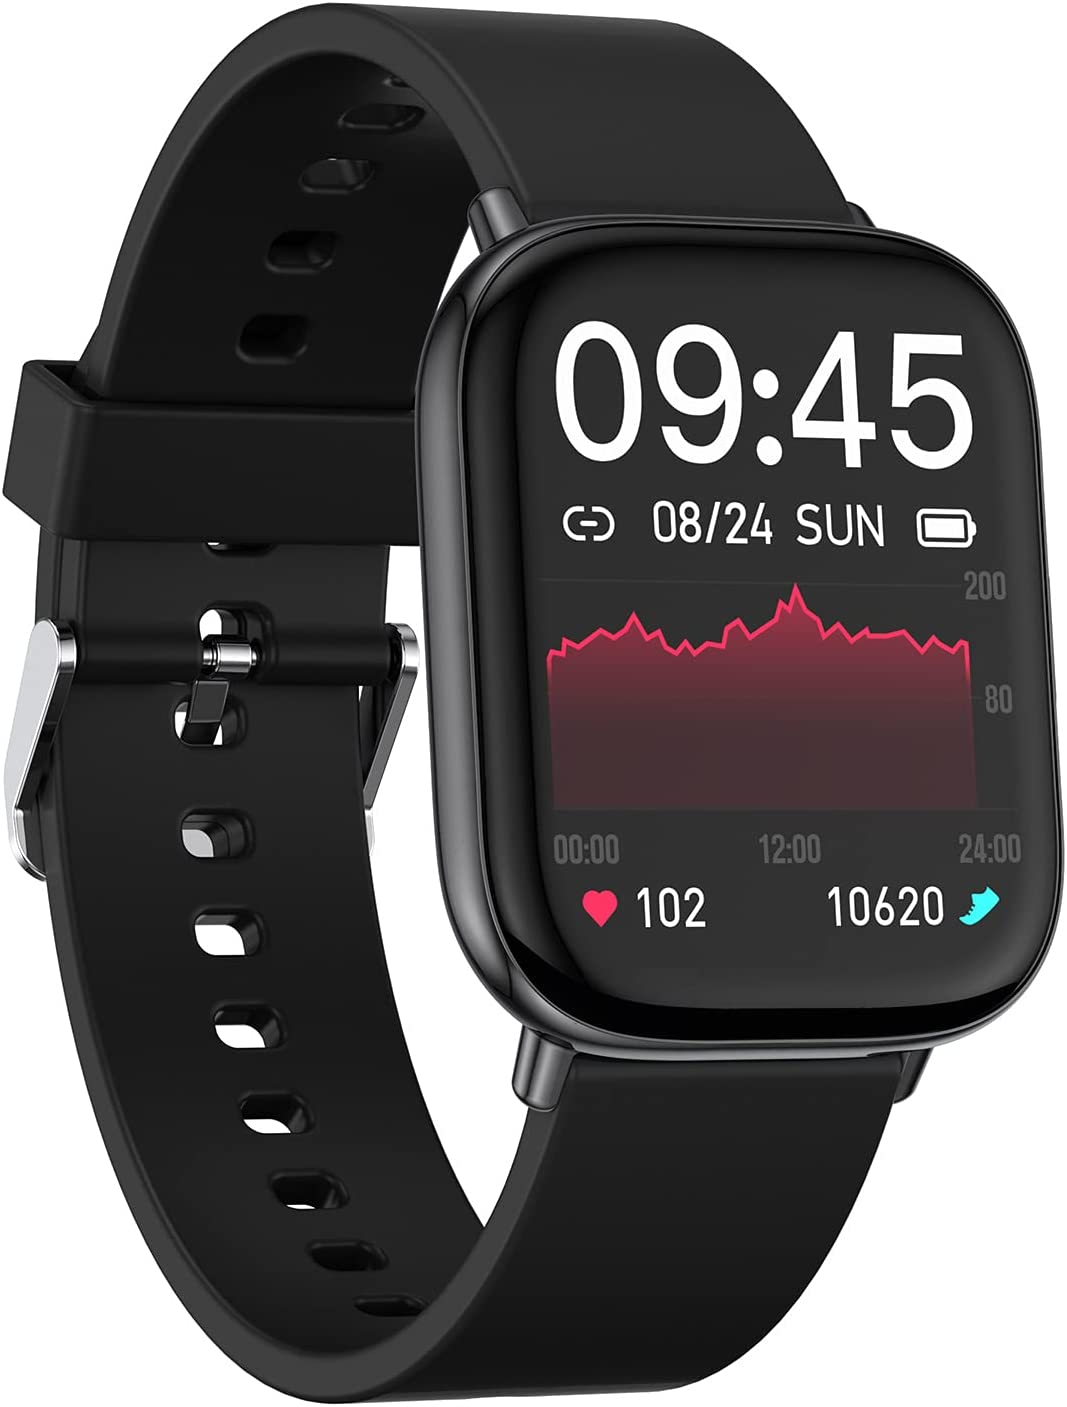 ELEXUS Smart Watch Fitness Tracker for Men Women,Heart Rate Activity Tracking Sport Smartwatches, Waterproof Pedometer Watches with Sleep Monitor Smartwatch Compatible iPhone and Android Phones